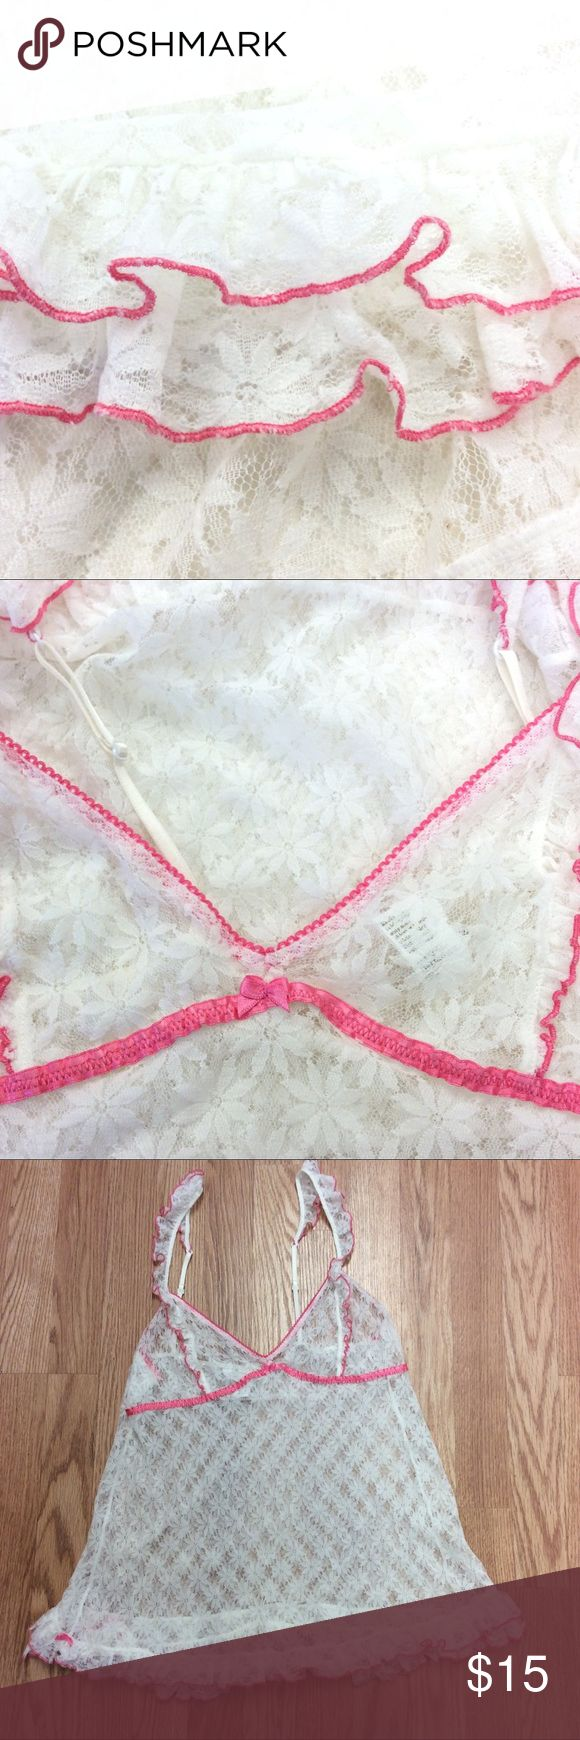 Victoria's Secret pink trimmed baby doll size L Victoria's Secret pink trimmed baby doll size L this sweet baby doll has 2 rows of ruffles trimmed in pink at the hem. Measurements taken with garment laying flat from back, bust is 28 inches length is 15 1/2 inches all measurements are approximate. GUC questions??? Please ask Victorias secret Intimates & Sleepwear Pajamas